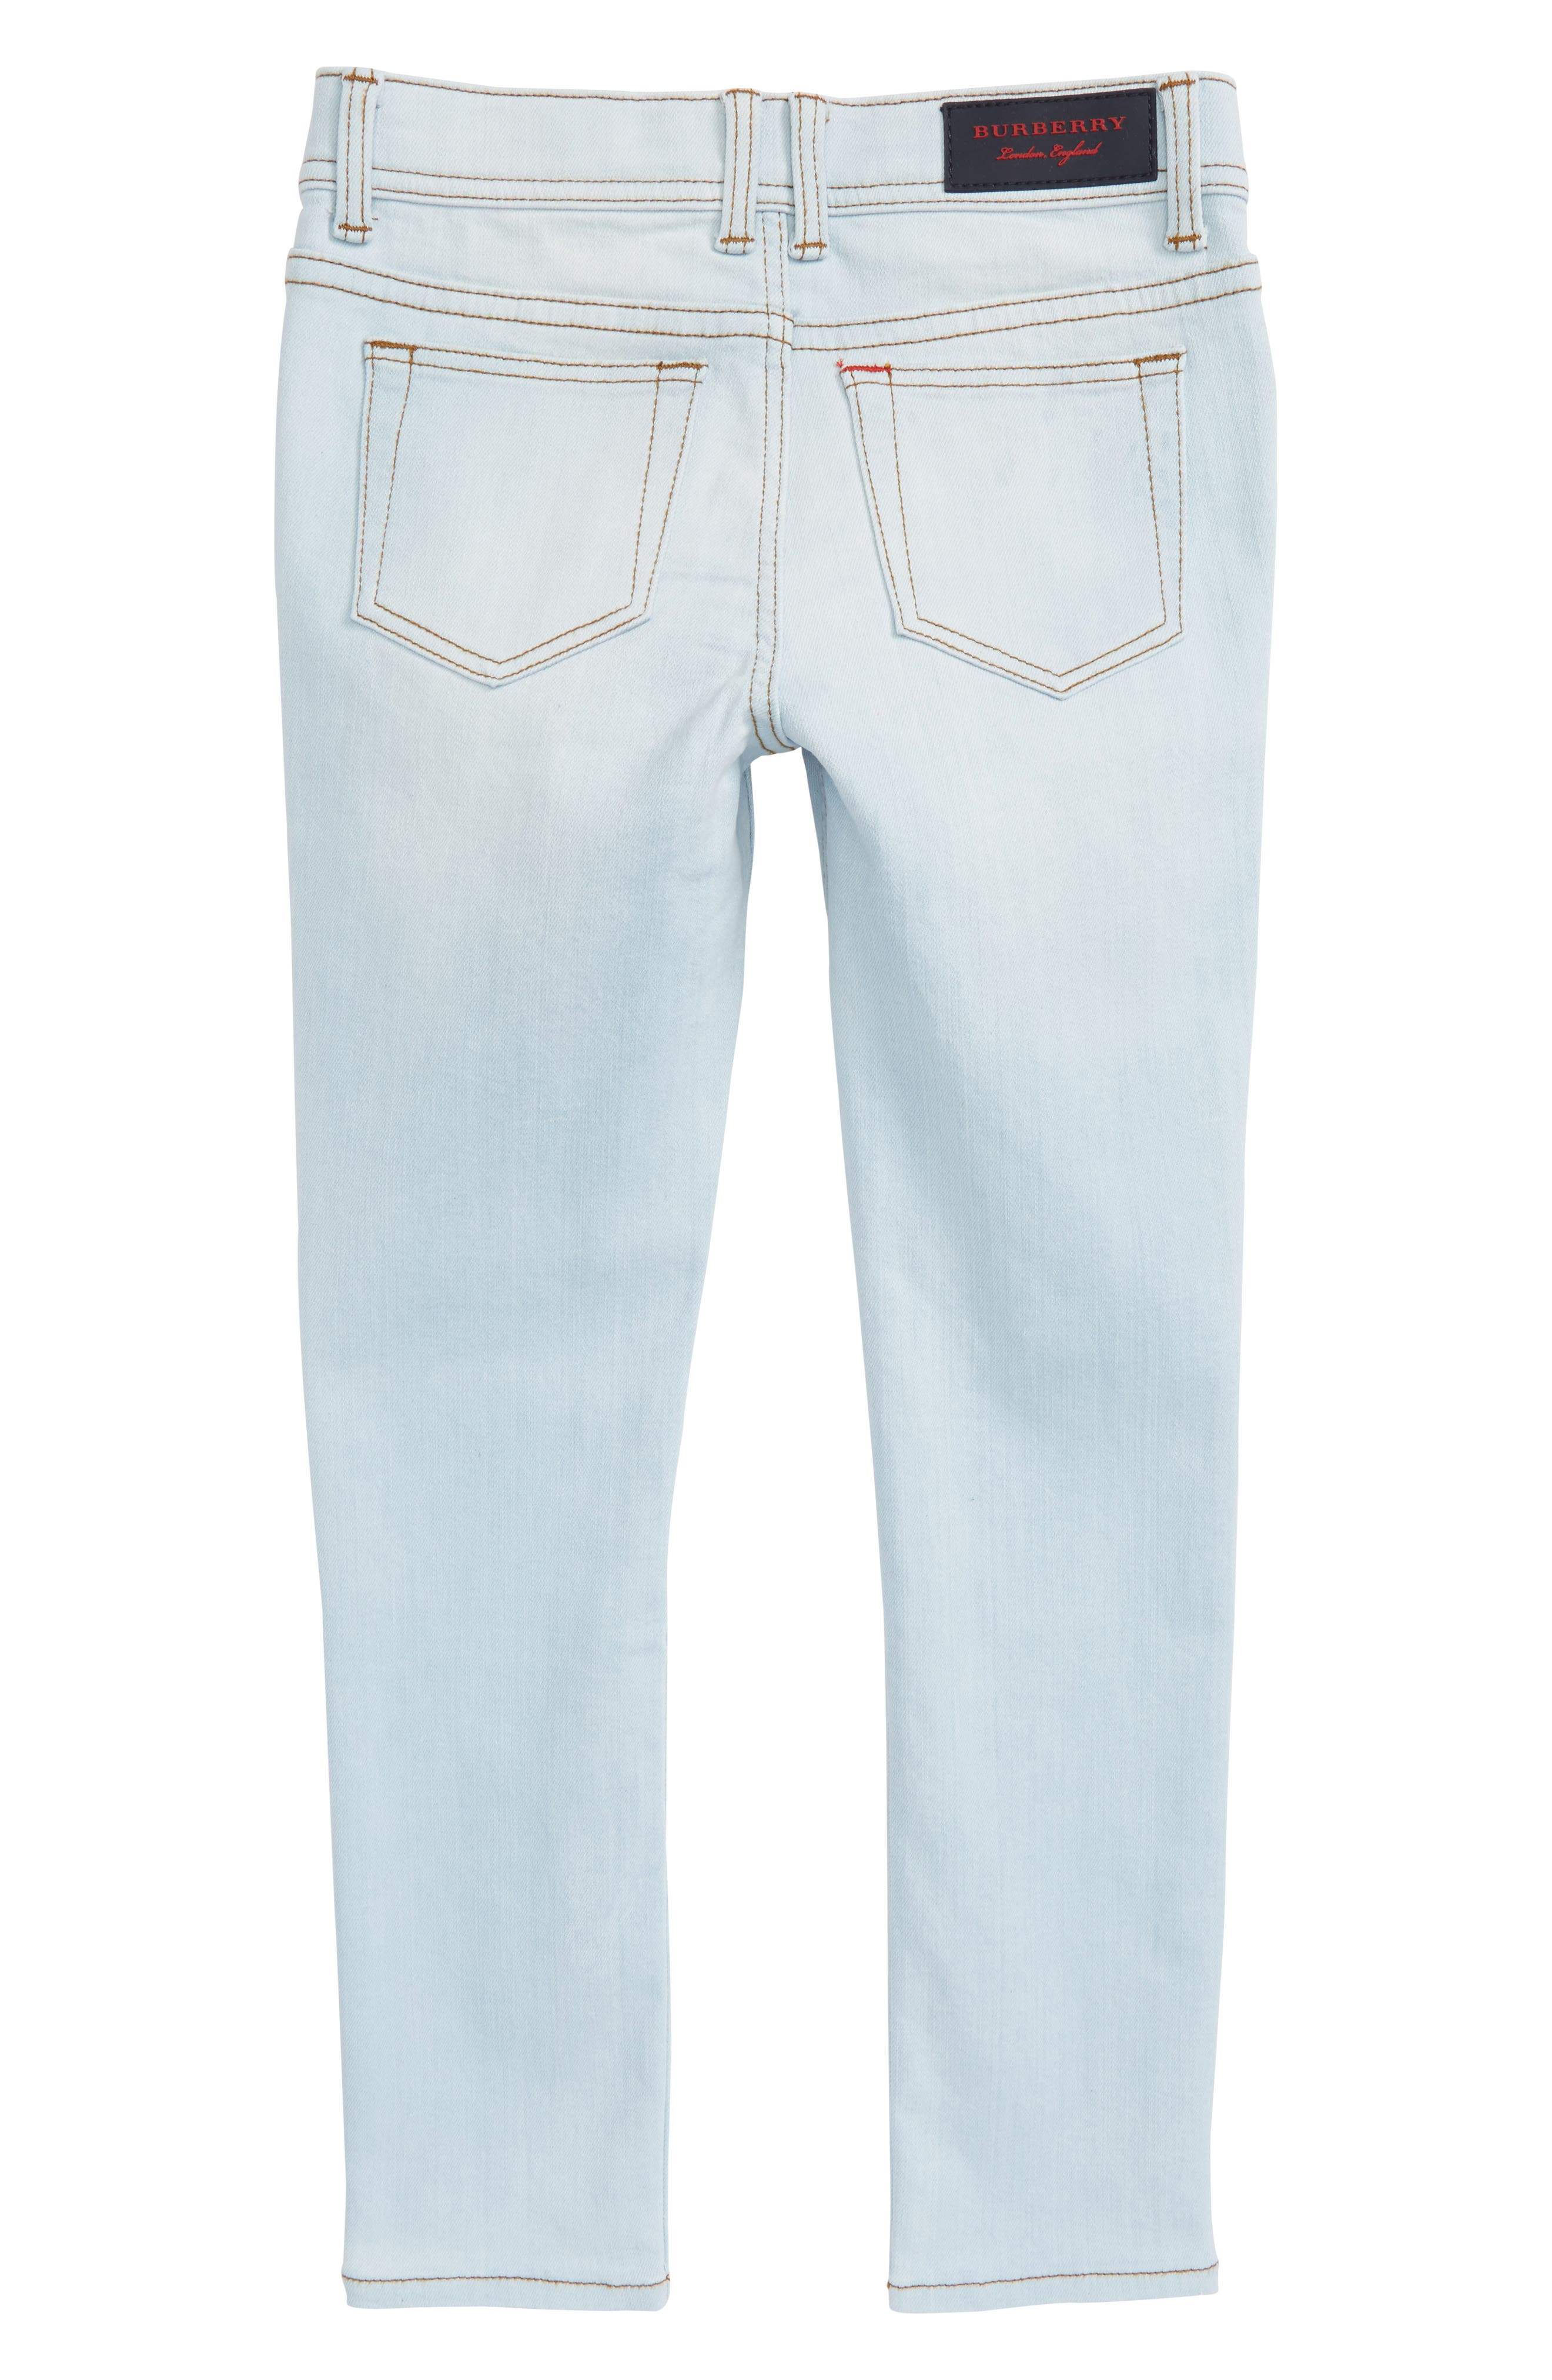 Skinny Jeans,                             Alternate thumbnail 2, color,                             Light Blue